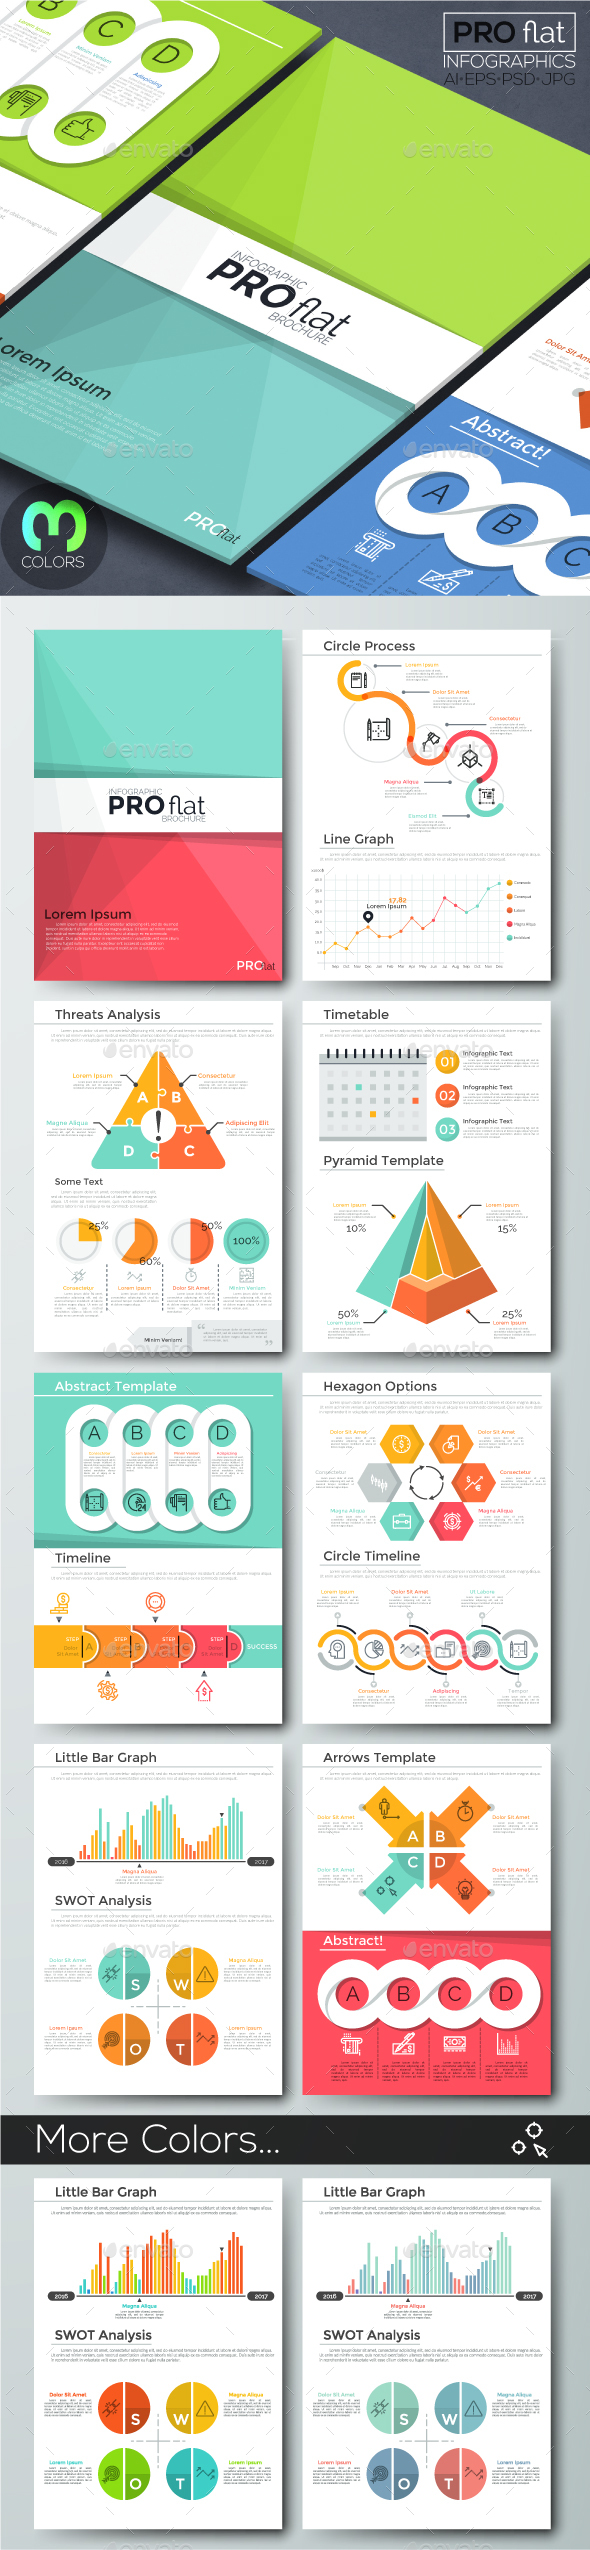 Pro Flat Infographic Brochure 11 (3 Versions)